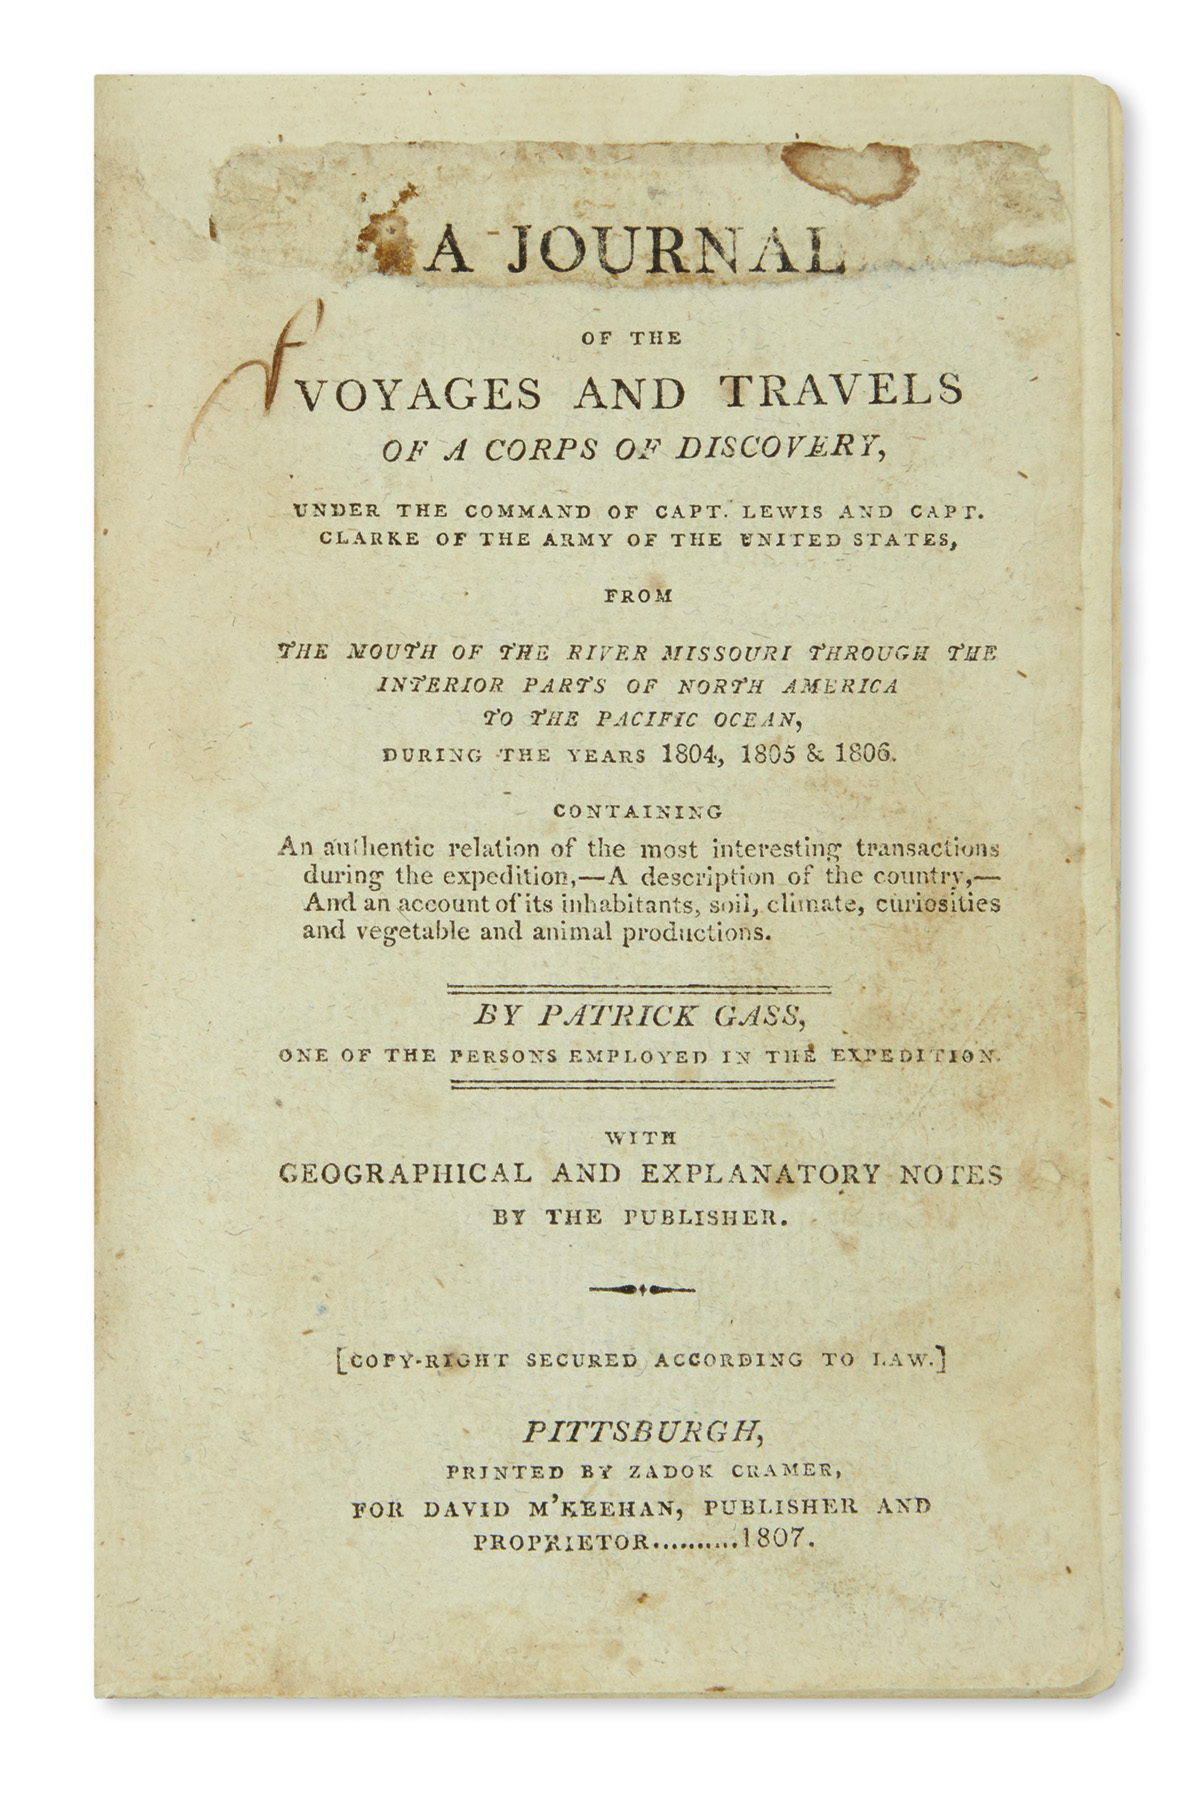 (LEWIS AND CLARK.) Gass, Patrick. A Journal of the Voyages and Travels of a Corps of Discovery,